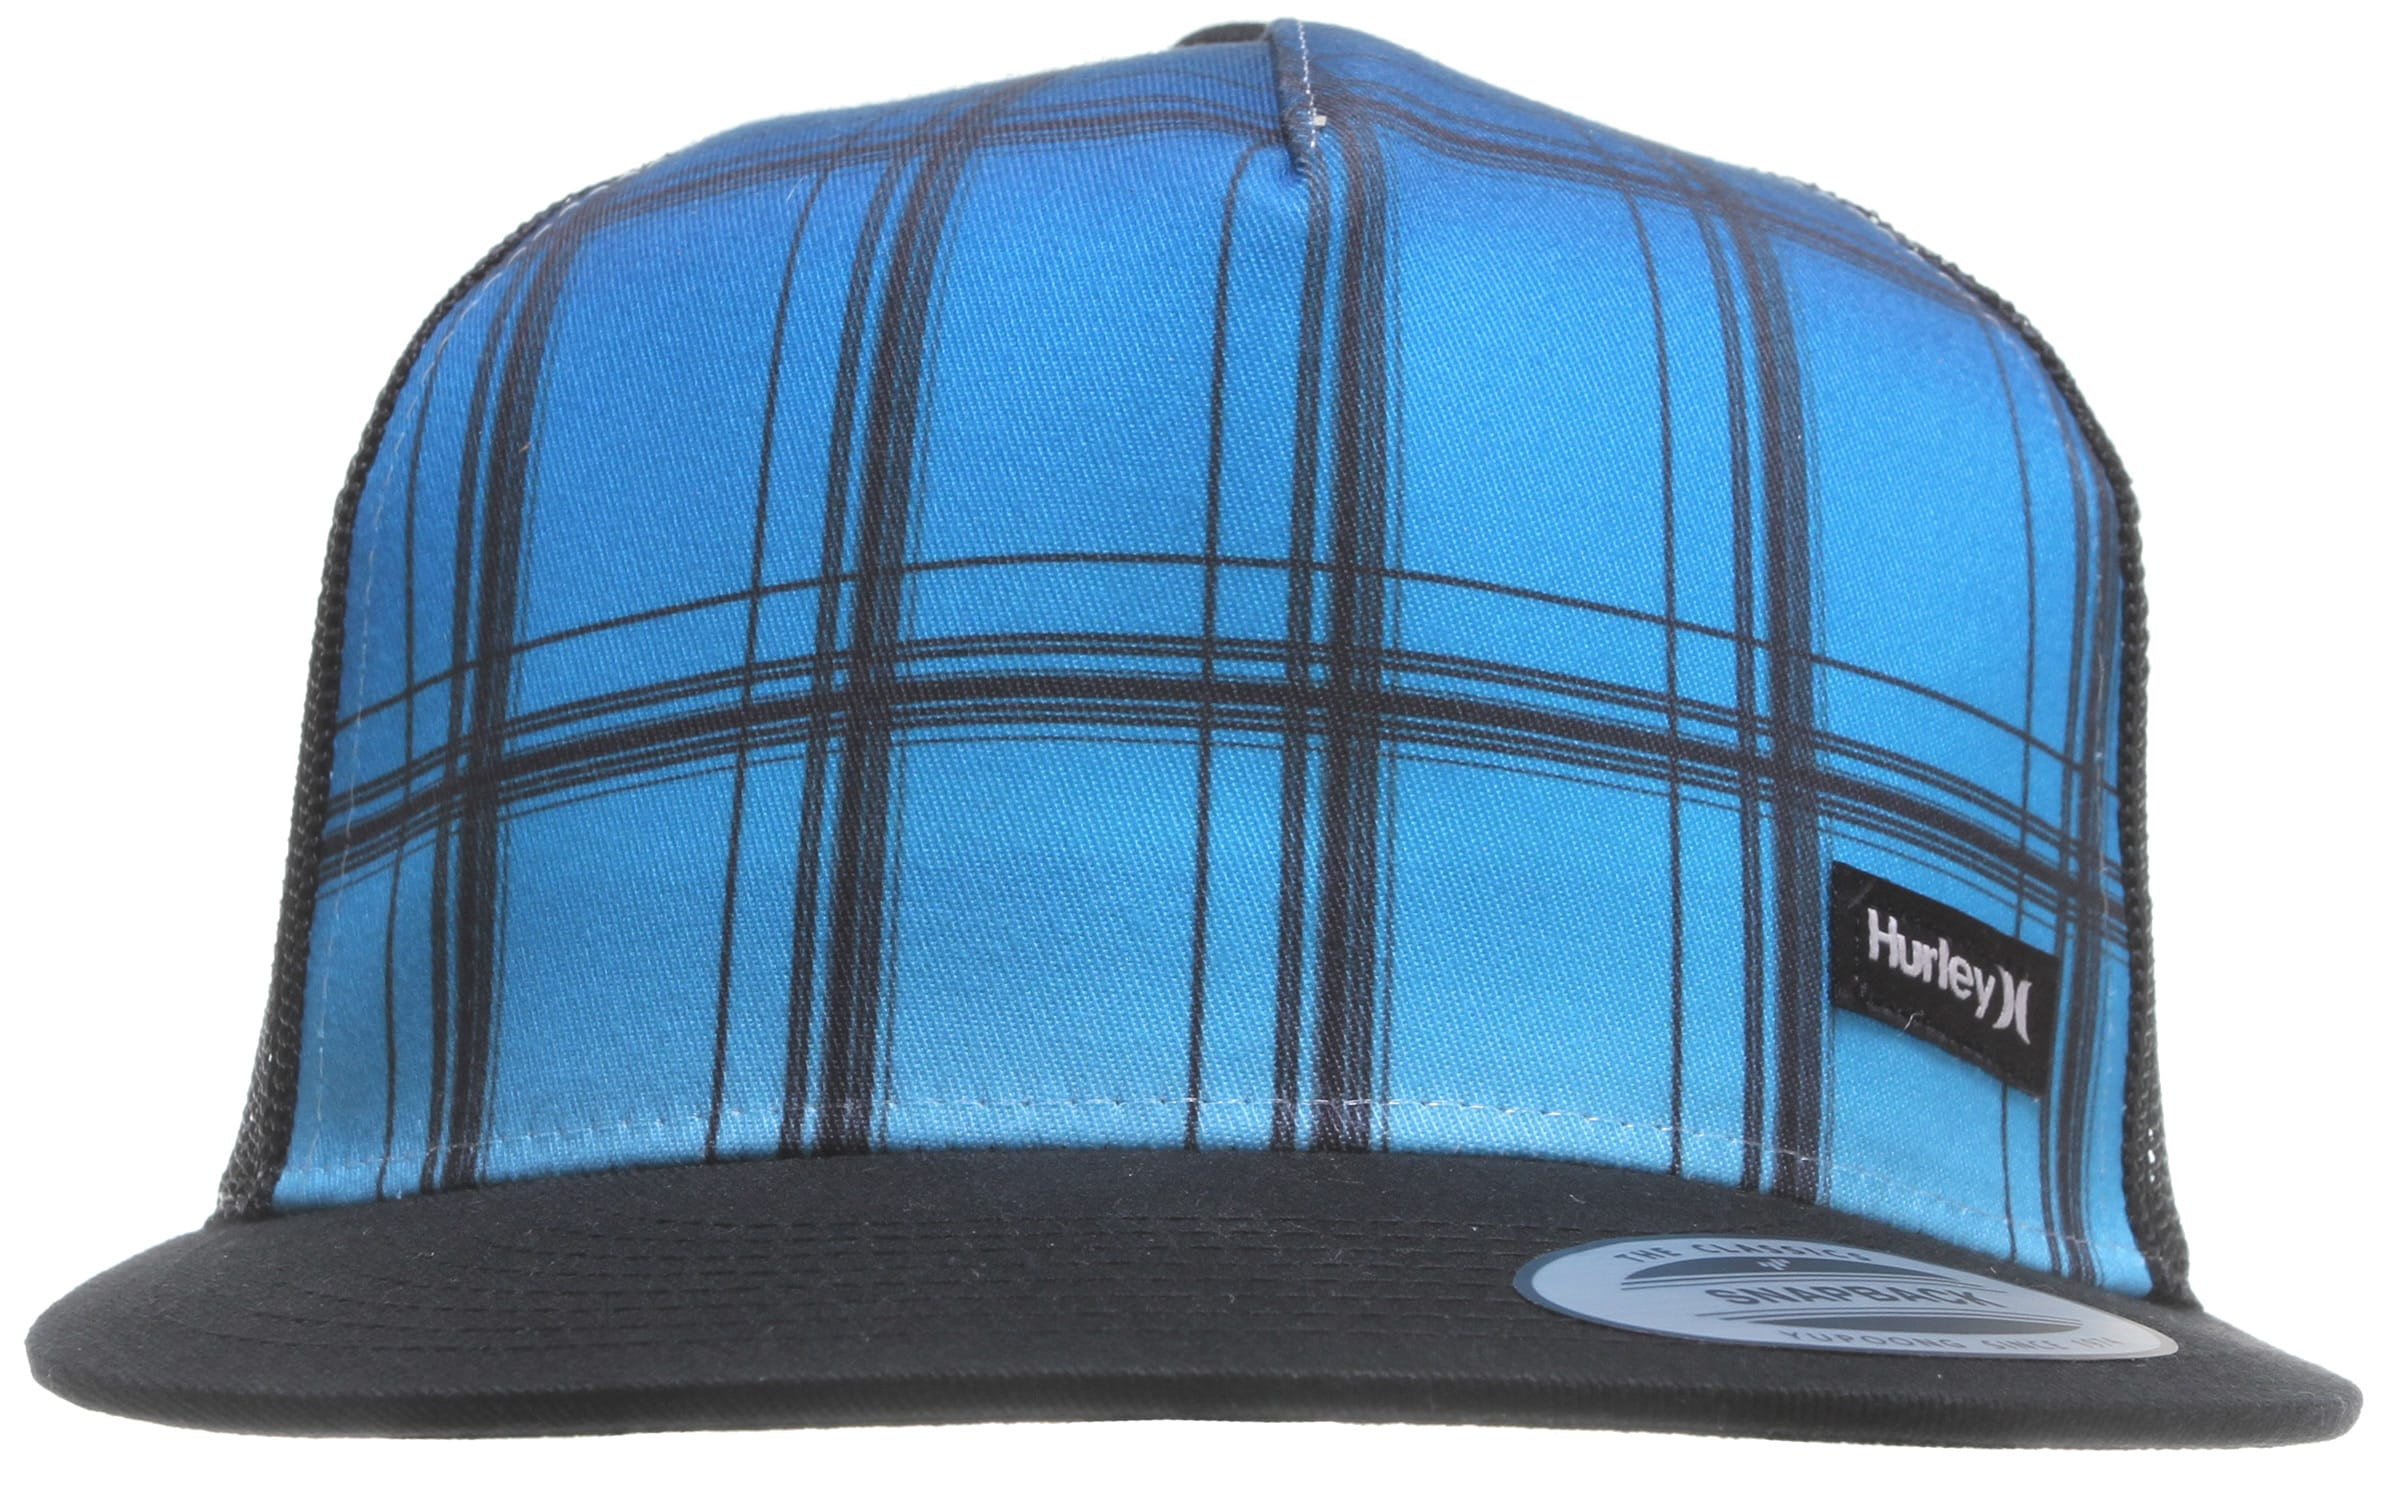 Hurley Trunks Trucker Cap - thumbnail 1 f601813e13a6